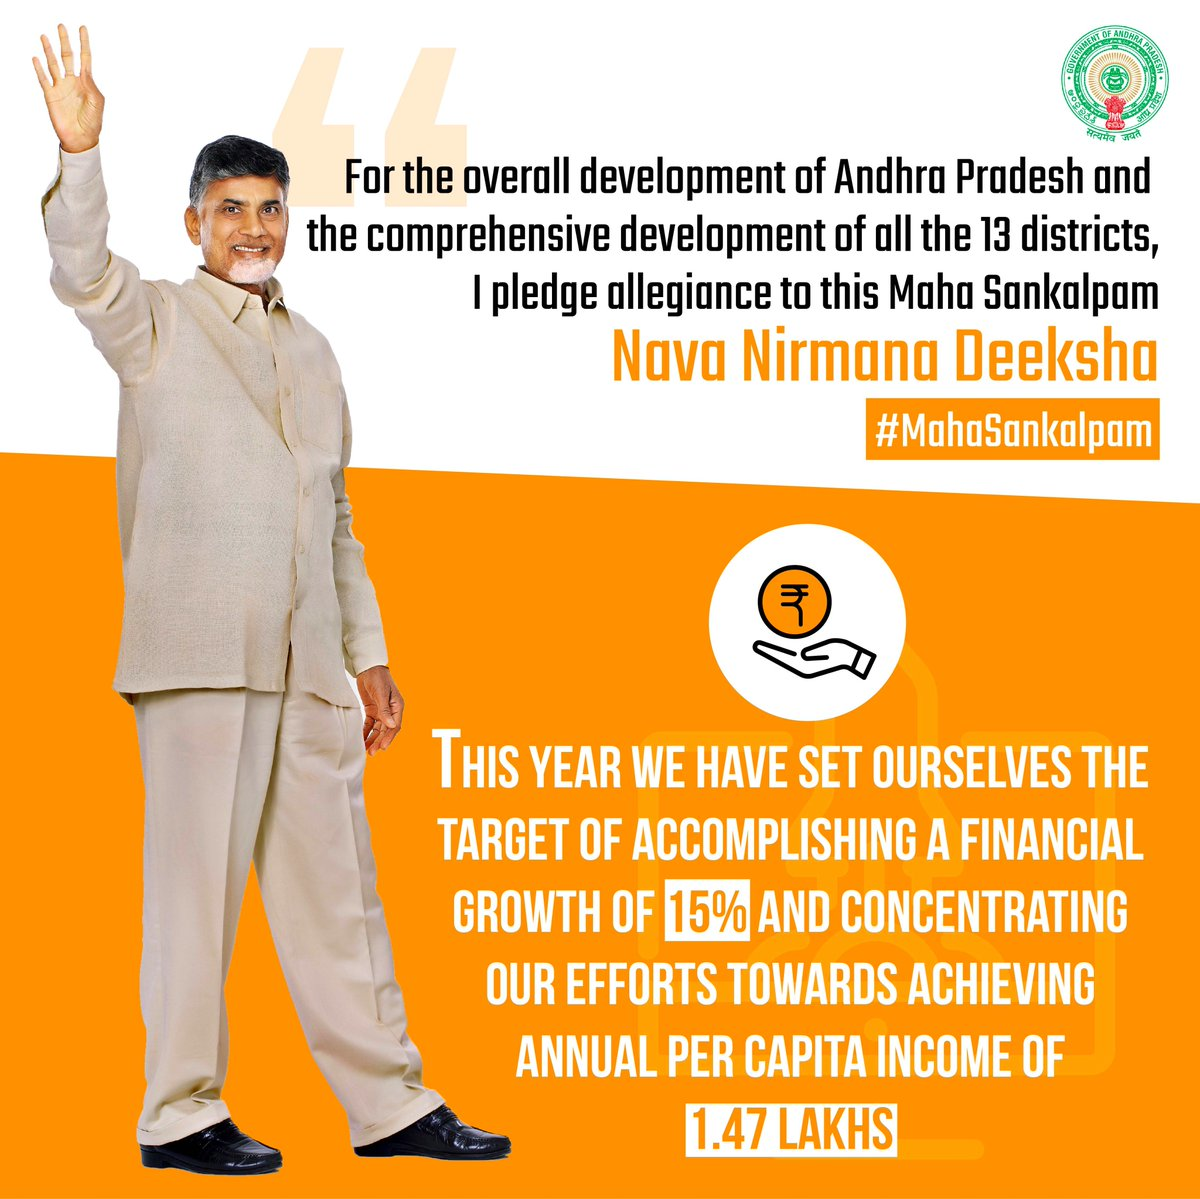 N Chandrababu Naidu on Twitter: